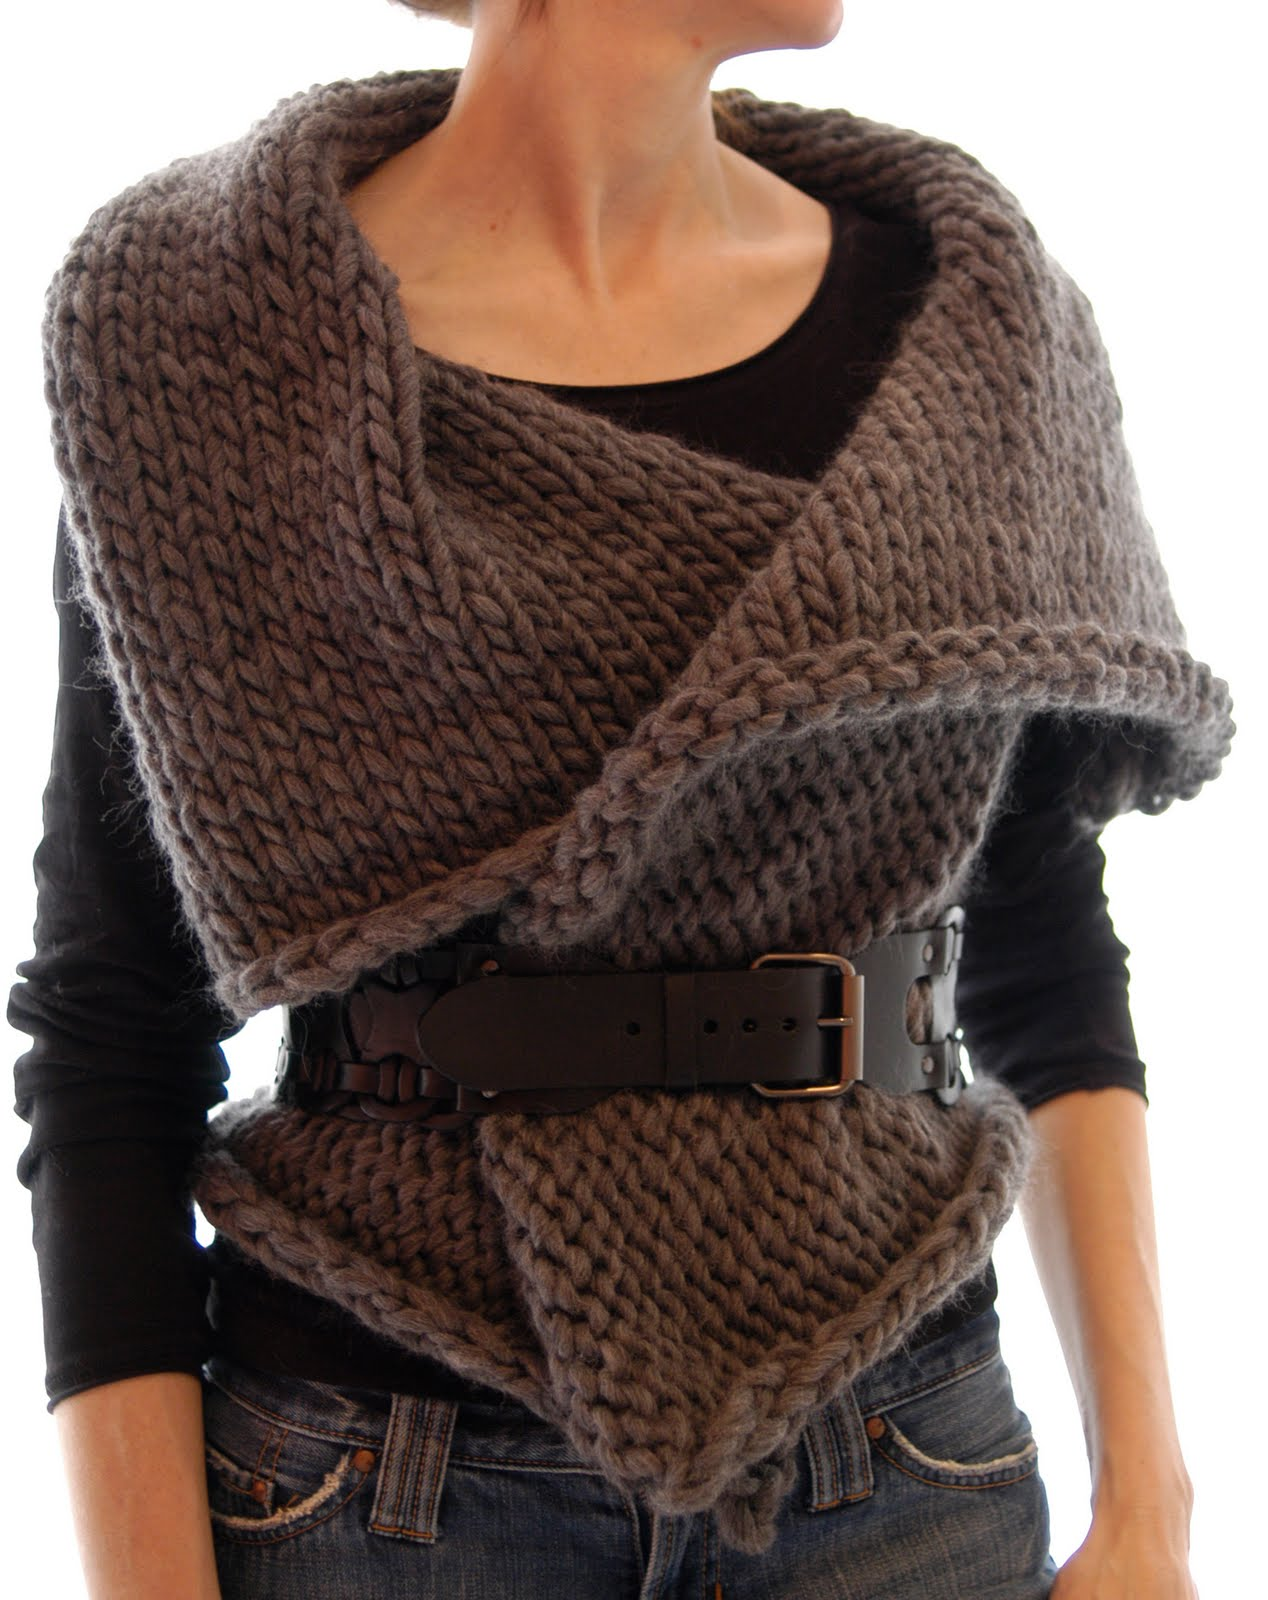 Easy Gilet Knitting Pattern : Knit 1 LA: Magnum Reversible Vest/Wrap